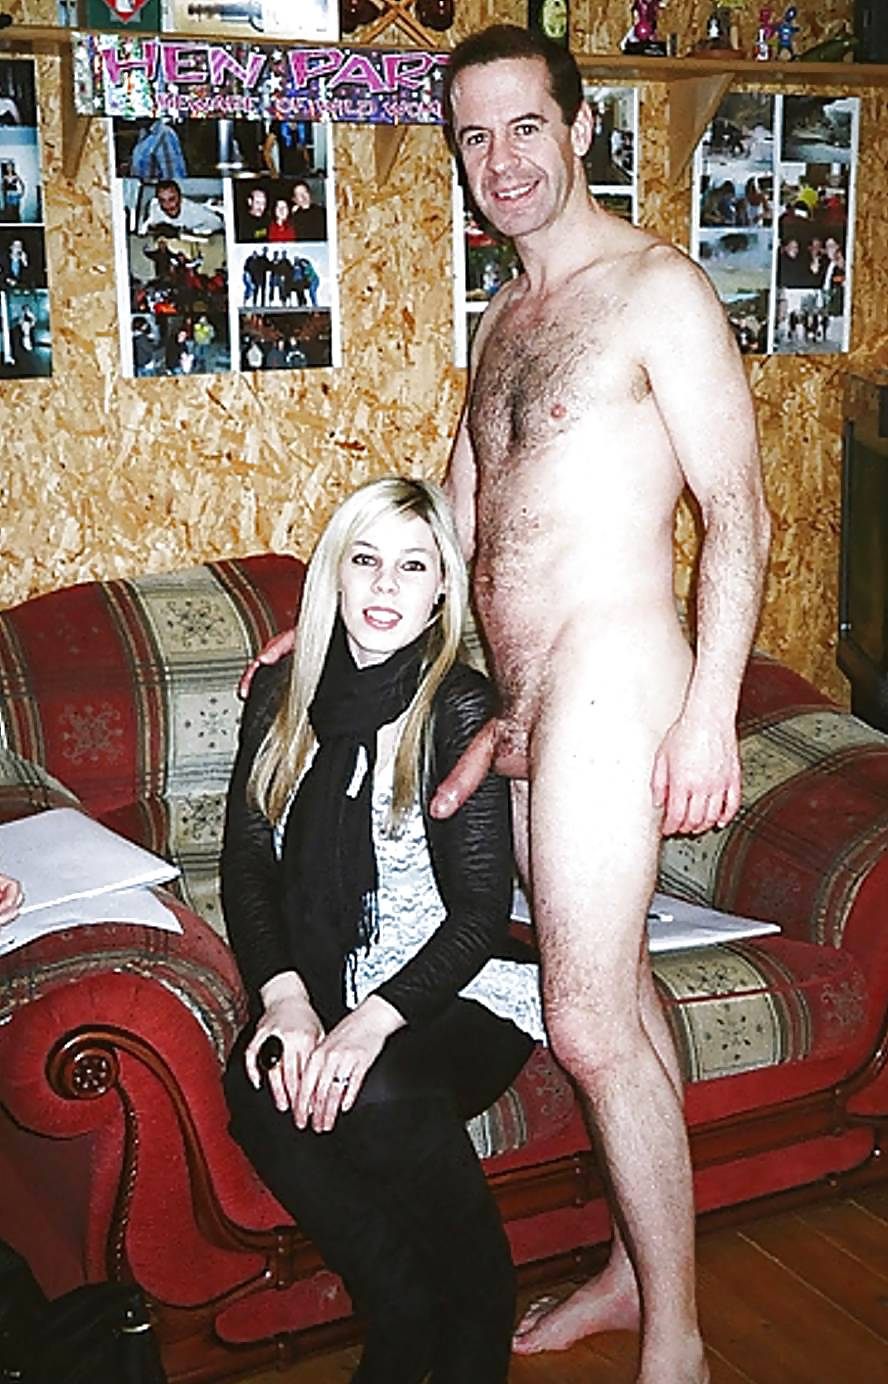 images-of-real-naked-fathers-hot-arab-sex-video